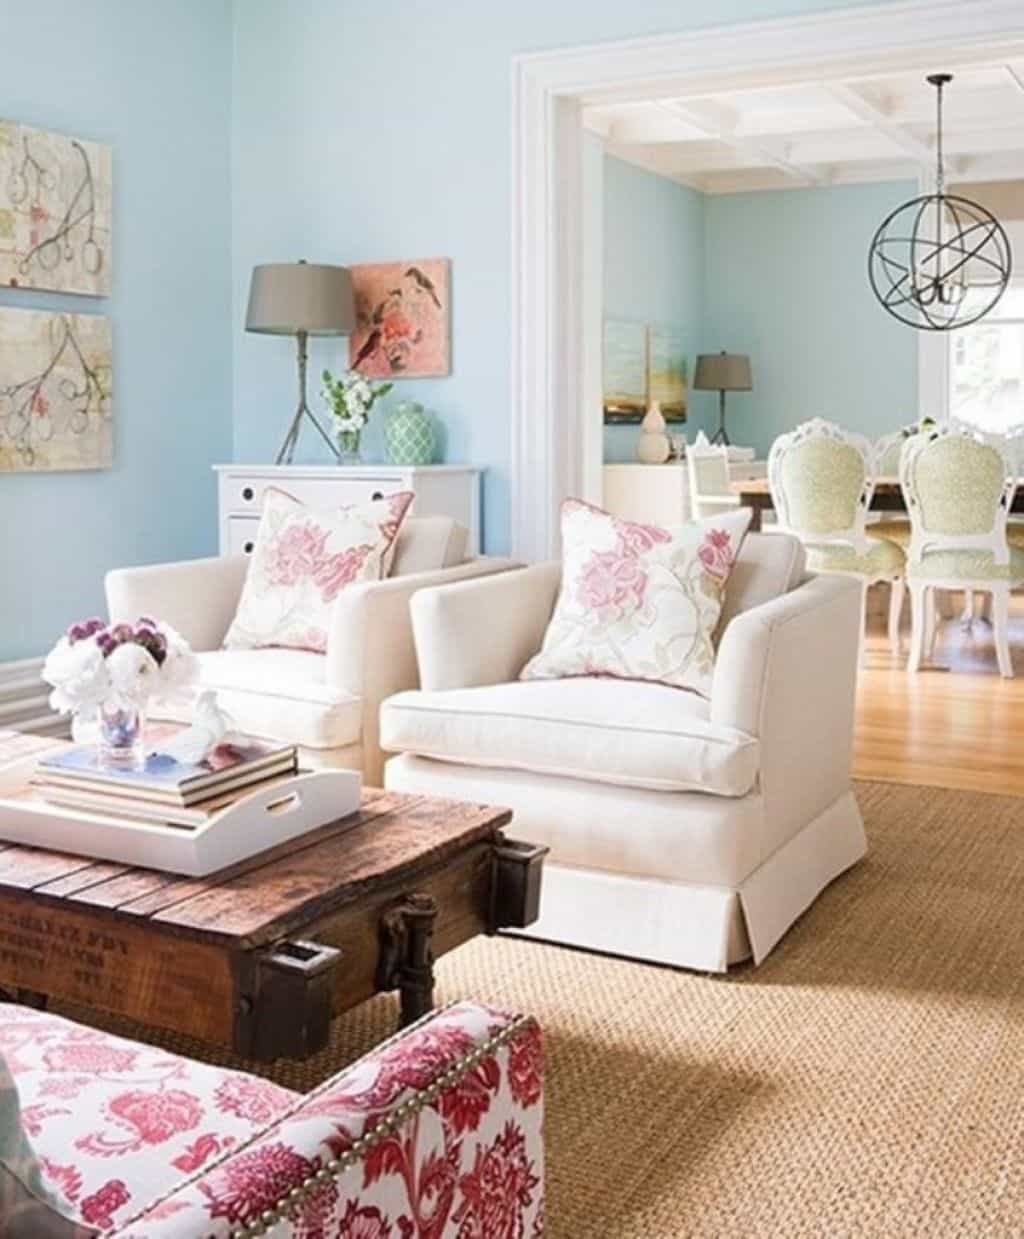 Shabby Chic Living Room - Shabby Chic Style Living Room Vintage Ideas 7